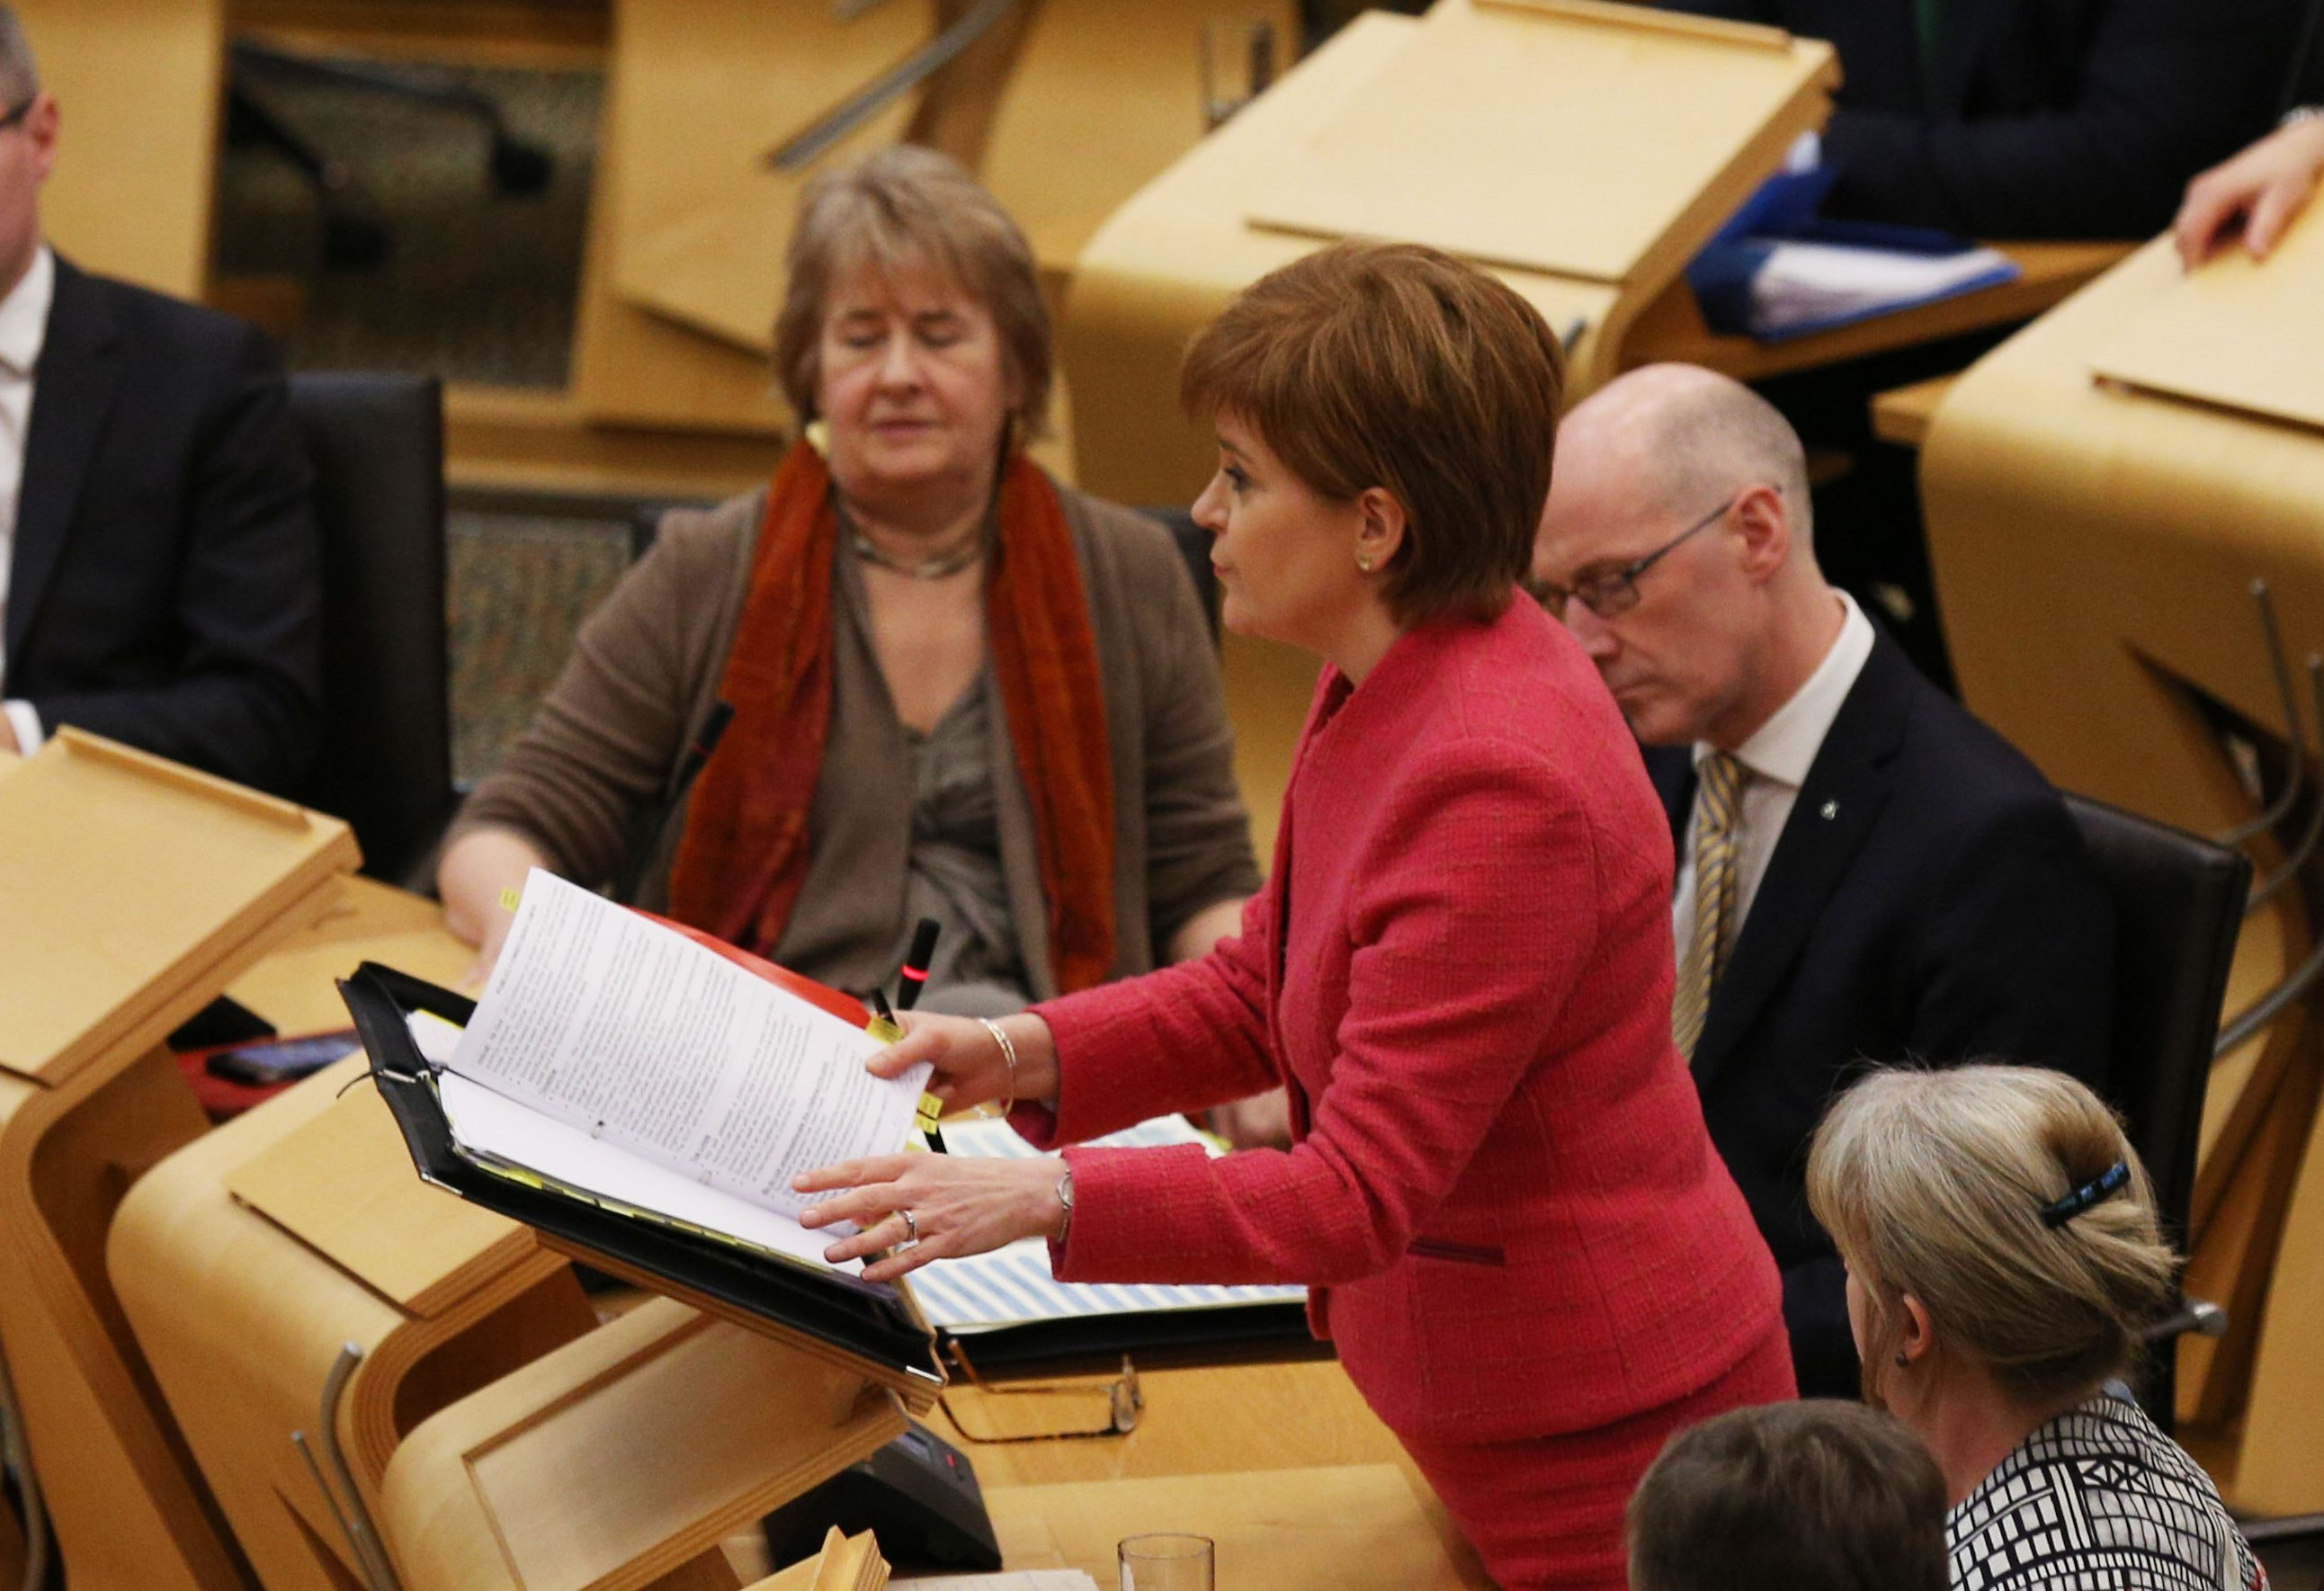 First Minister Nicola Sturgeon in the debating chamber during FMQs at the Scottish Parliament in Edinburgh (David Cheskin/PA Wire)